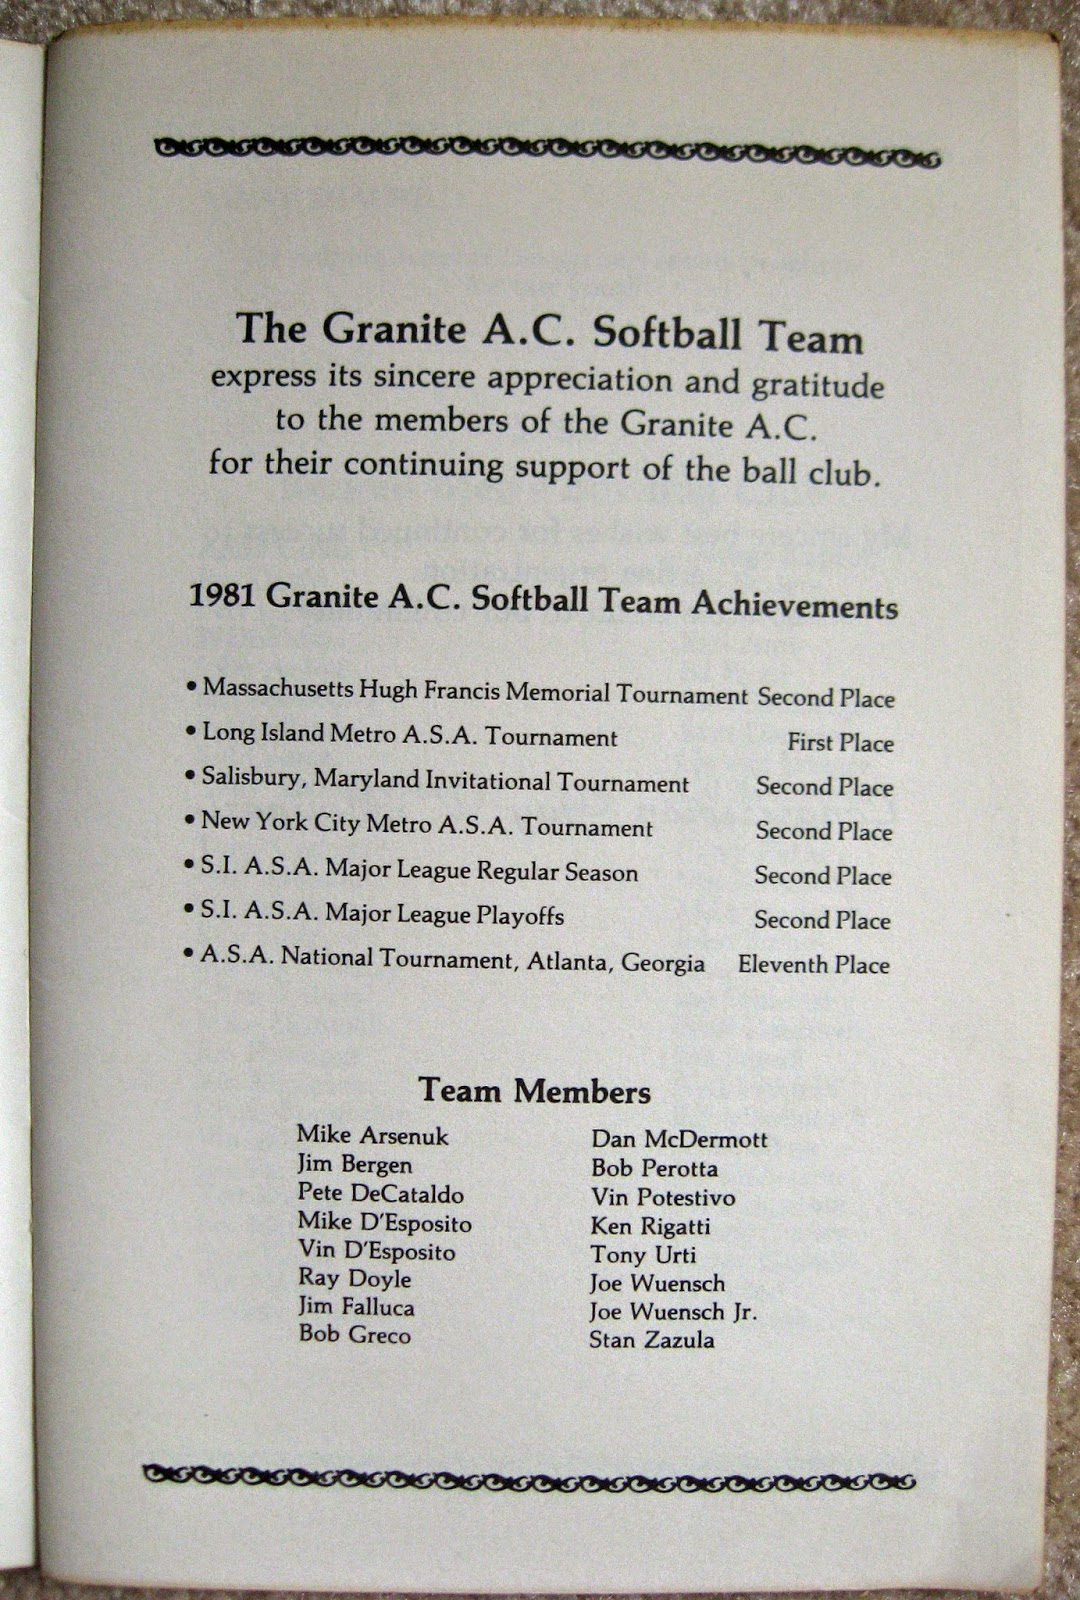 Page 2 of booklet displaying Granite softball team roster and tournament finishes for 1981